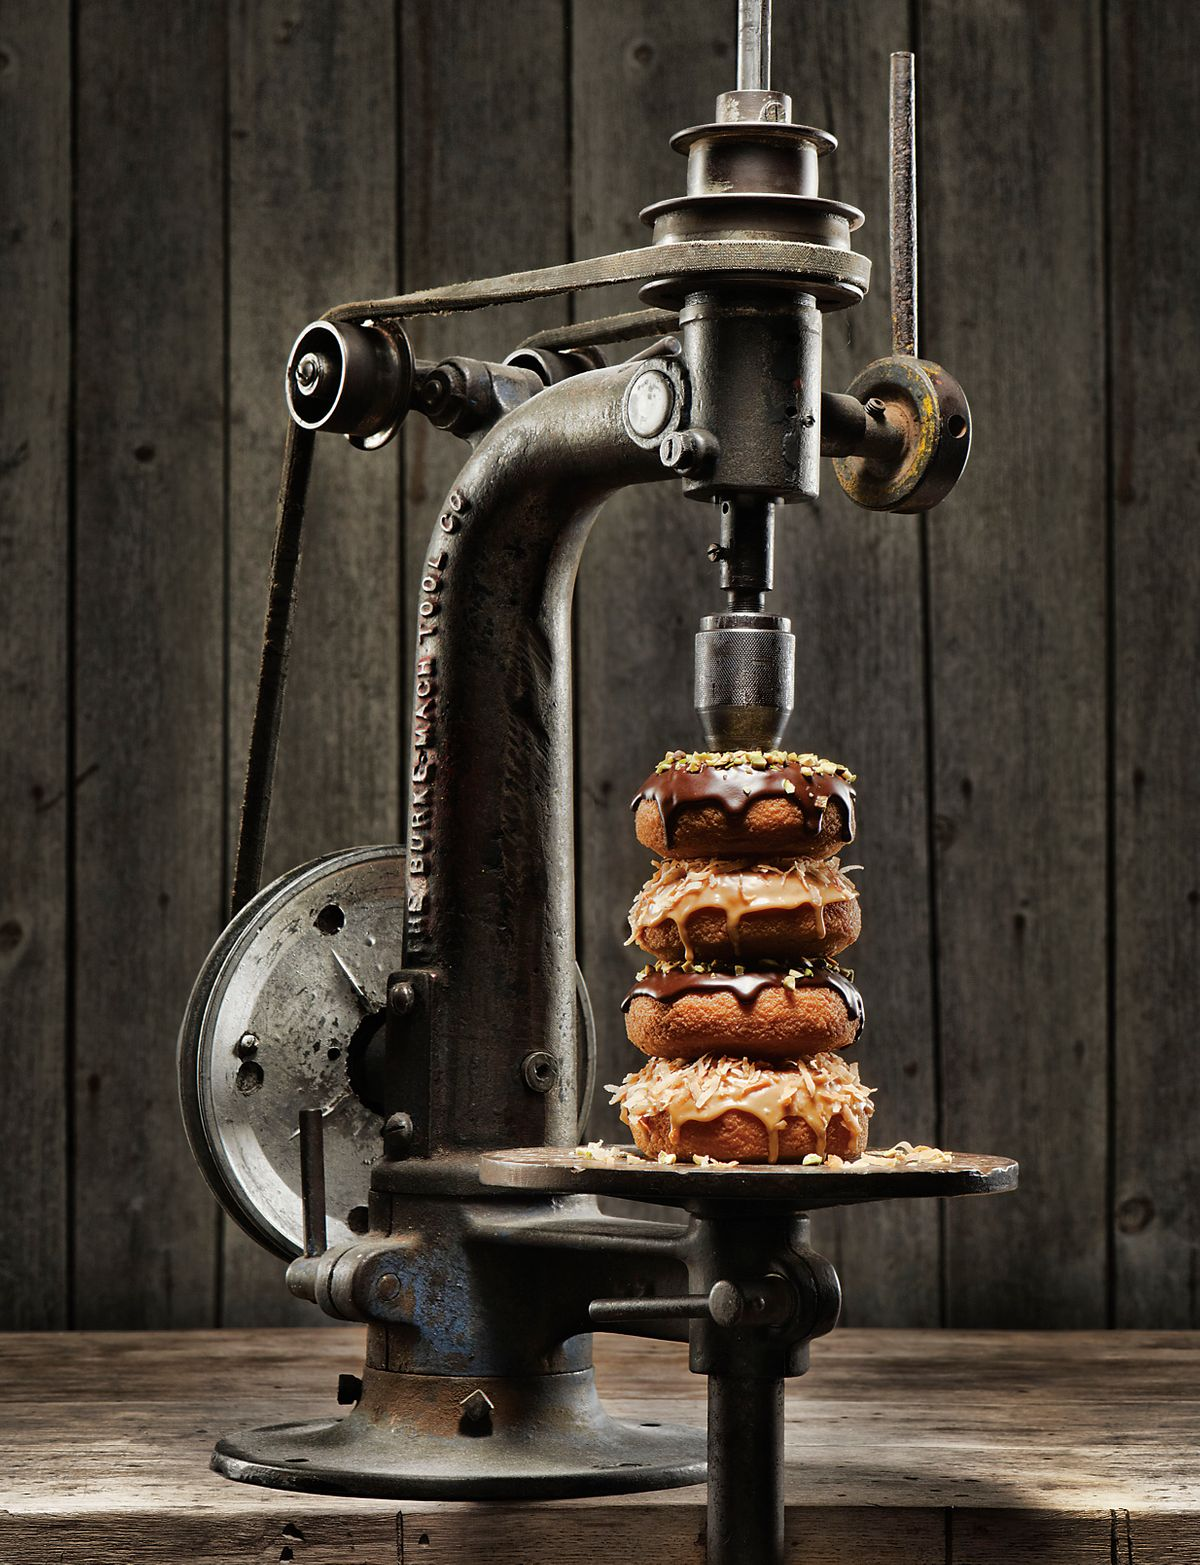 lisa bishop food stylist- drilled down donuts